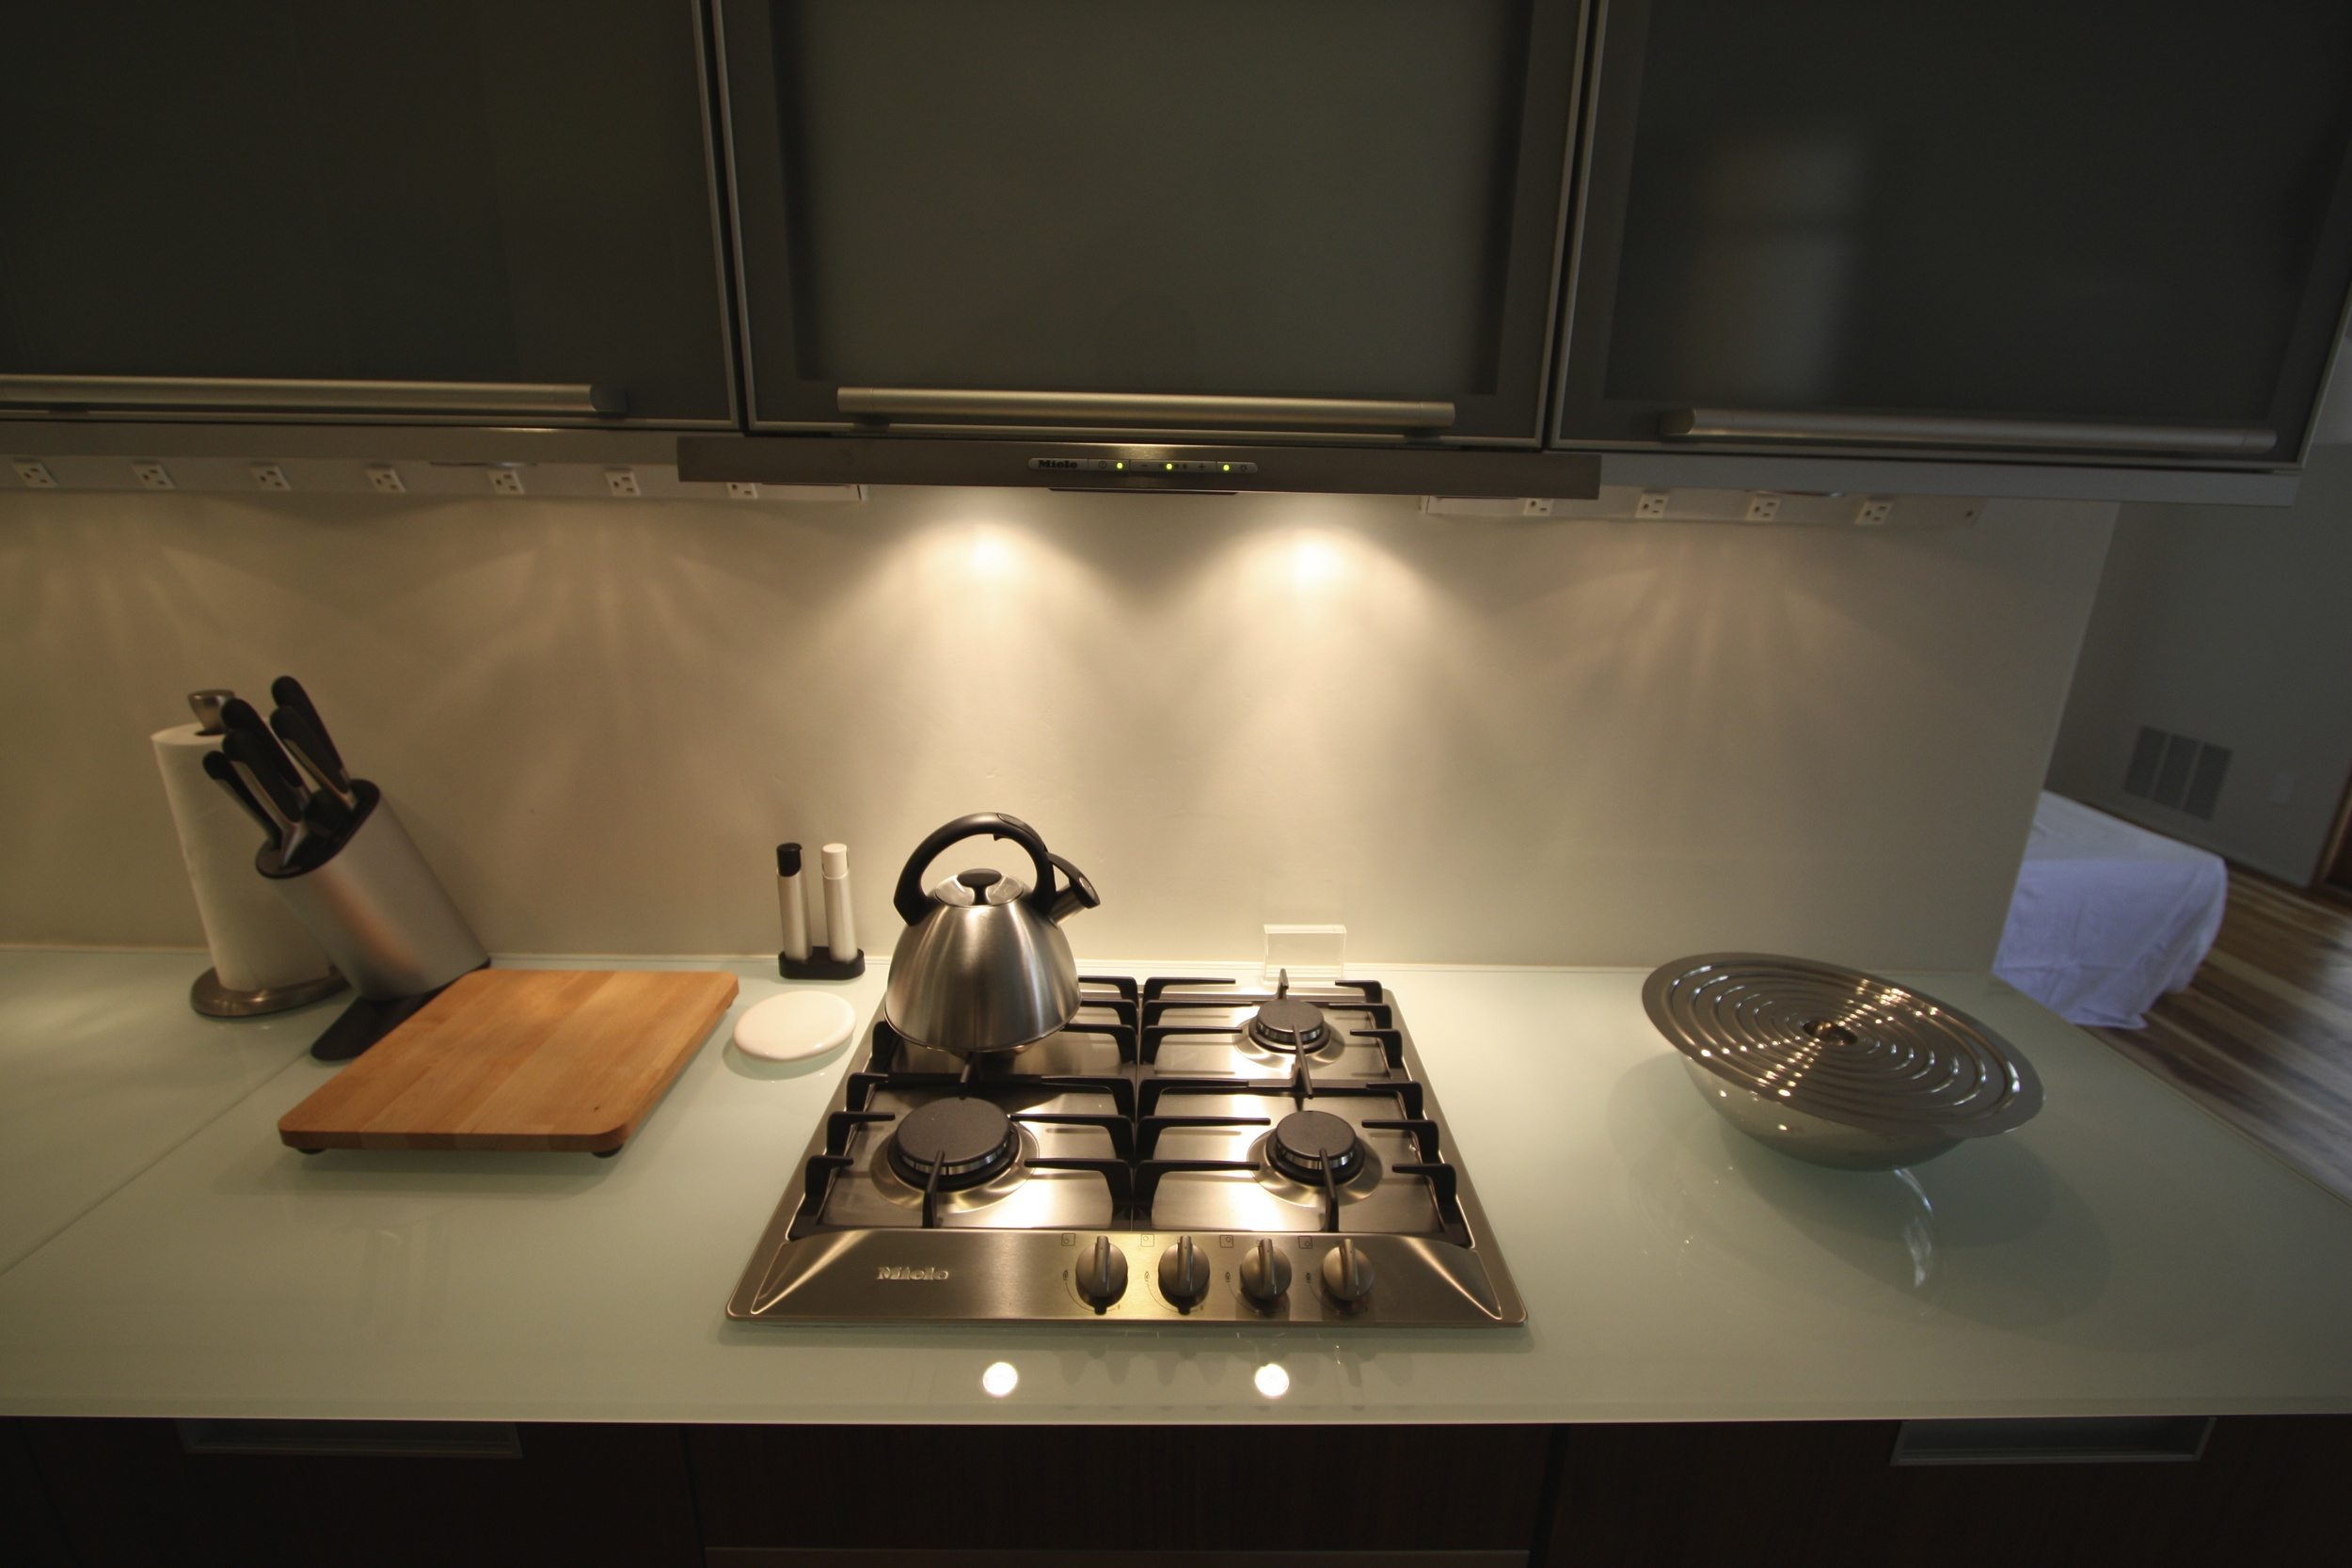 Miele cooktop and vent.